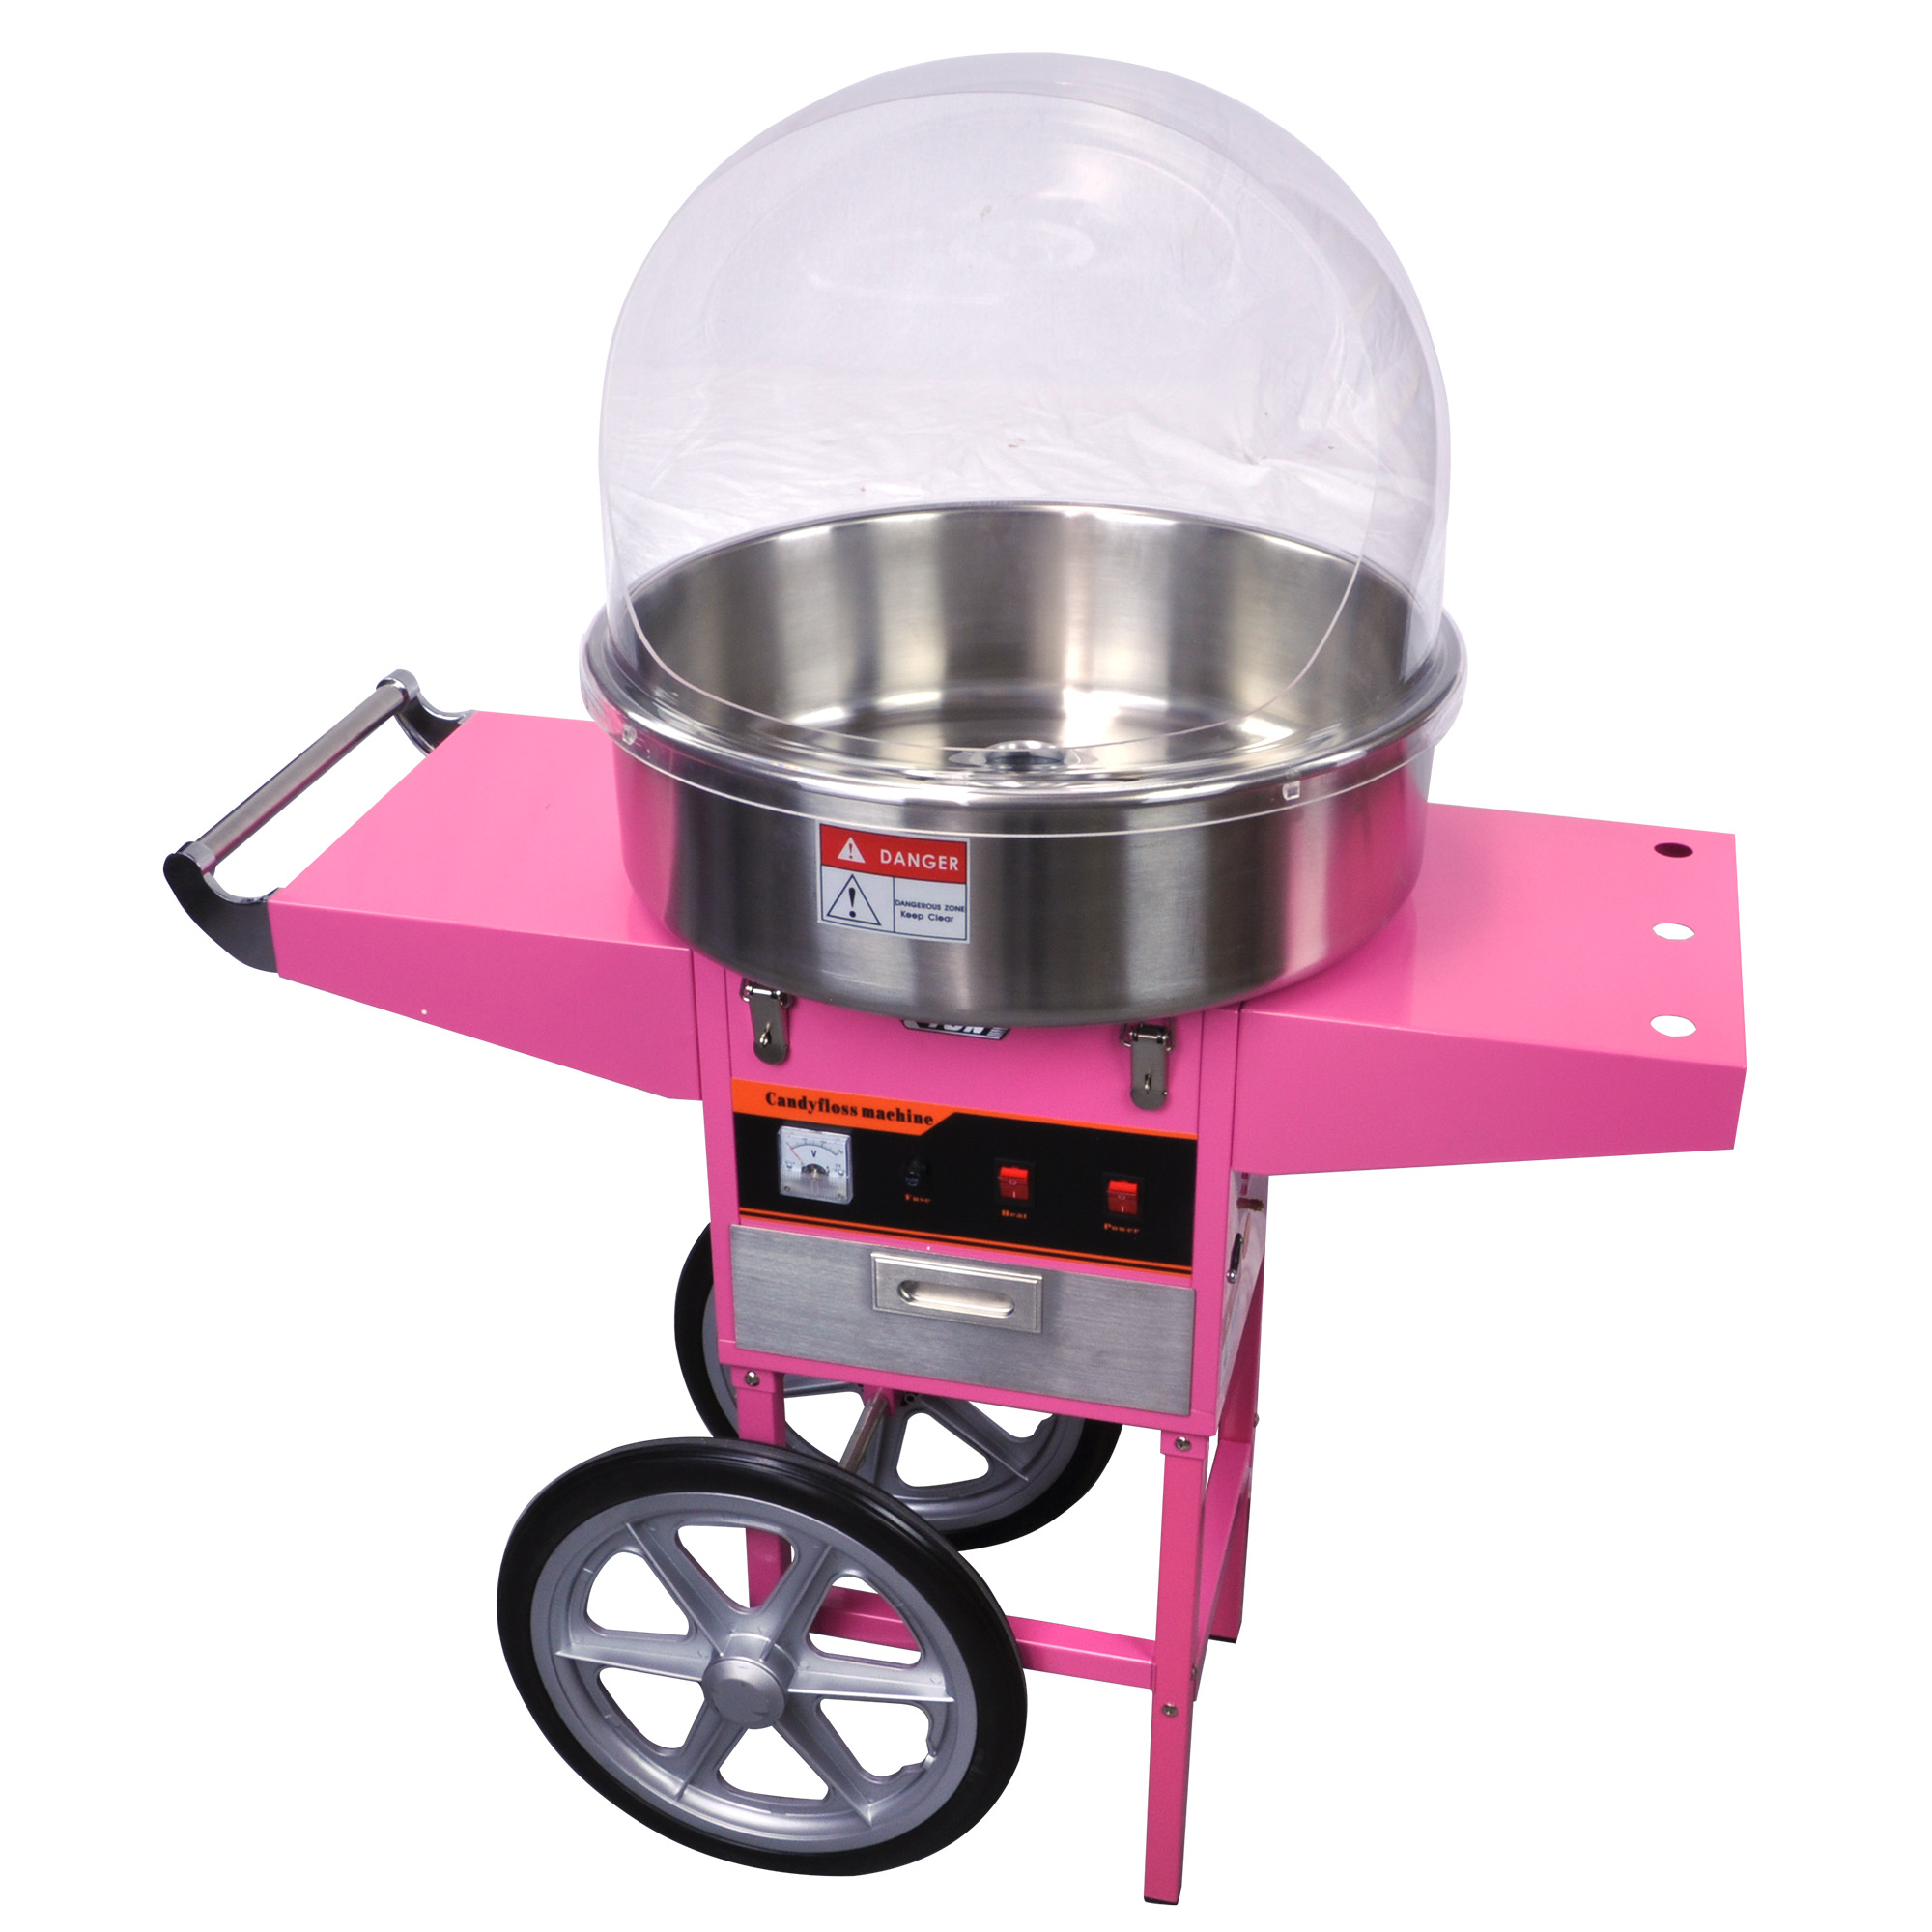 Luxury Candy Floss Cotton Candy Machine W Music And Cover